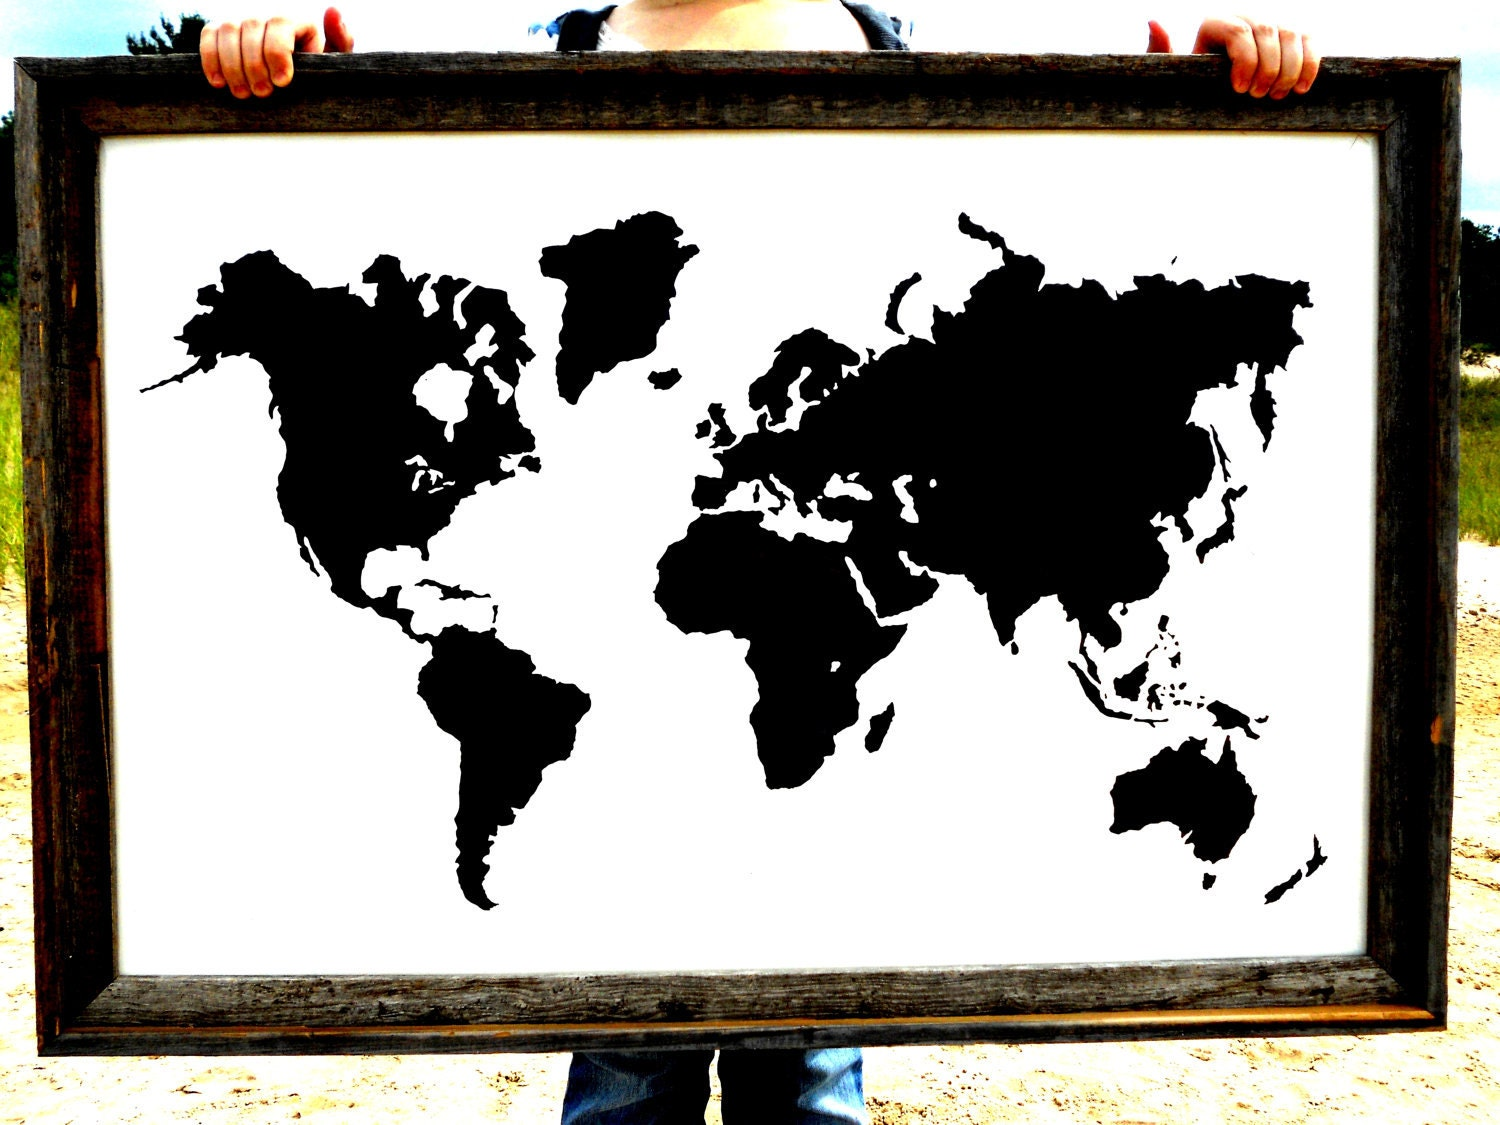 Giant Modern World Map Print Poster 24x36 by IScreenYouScreen